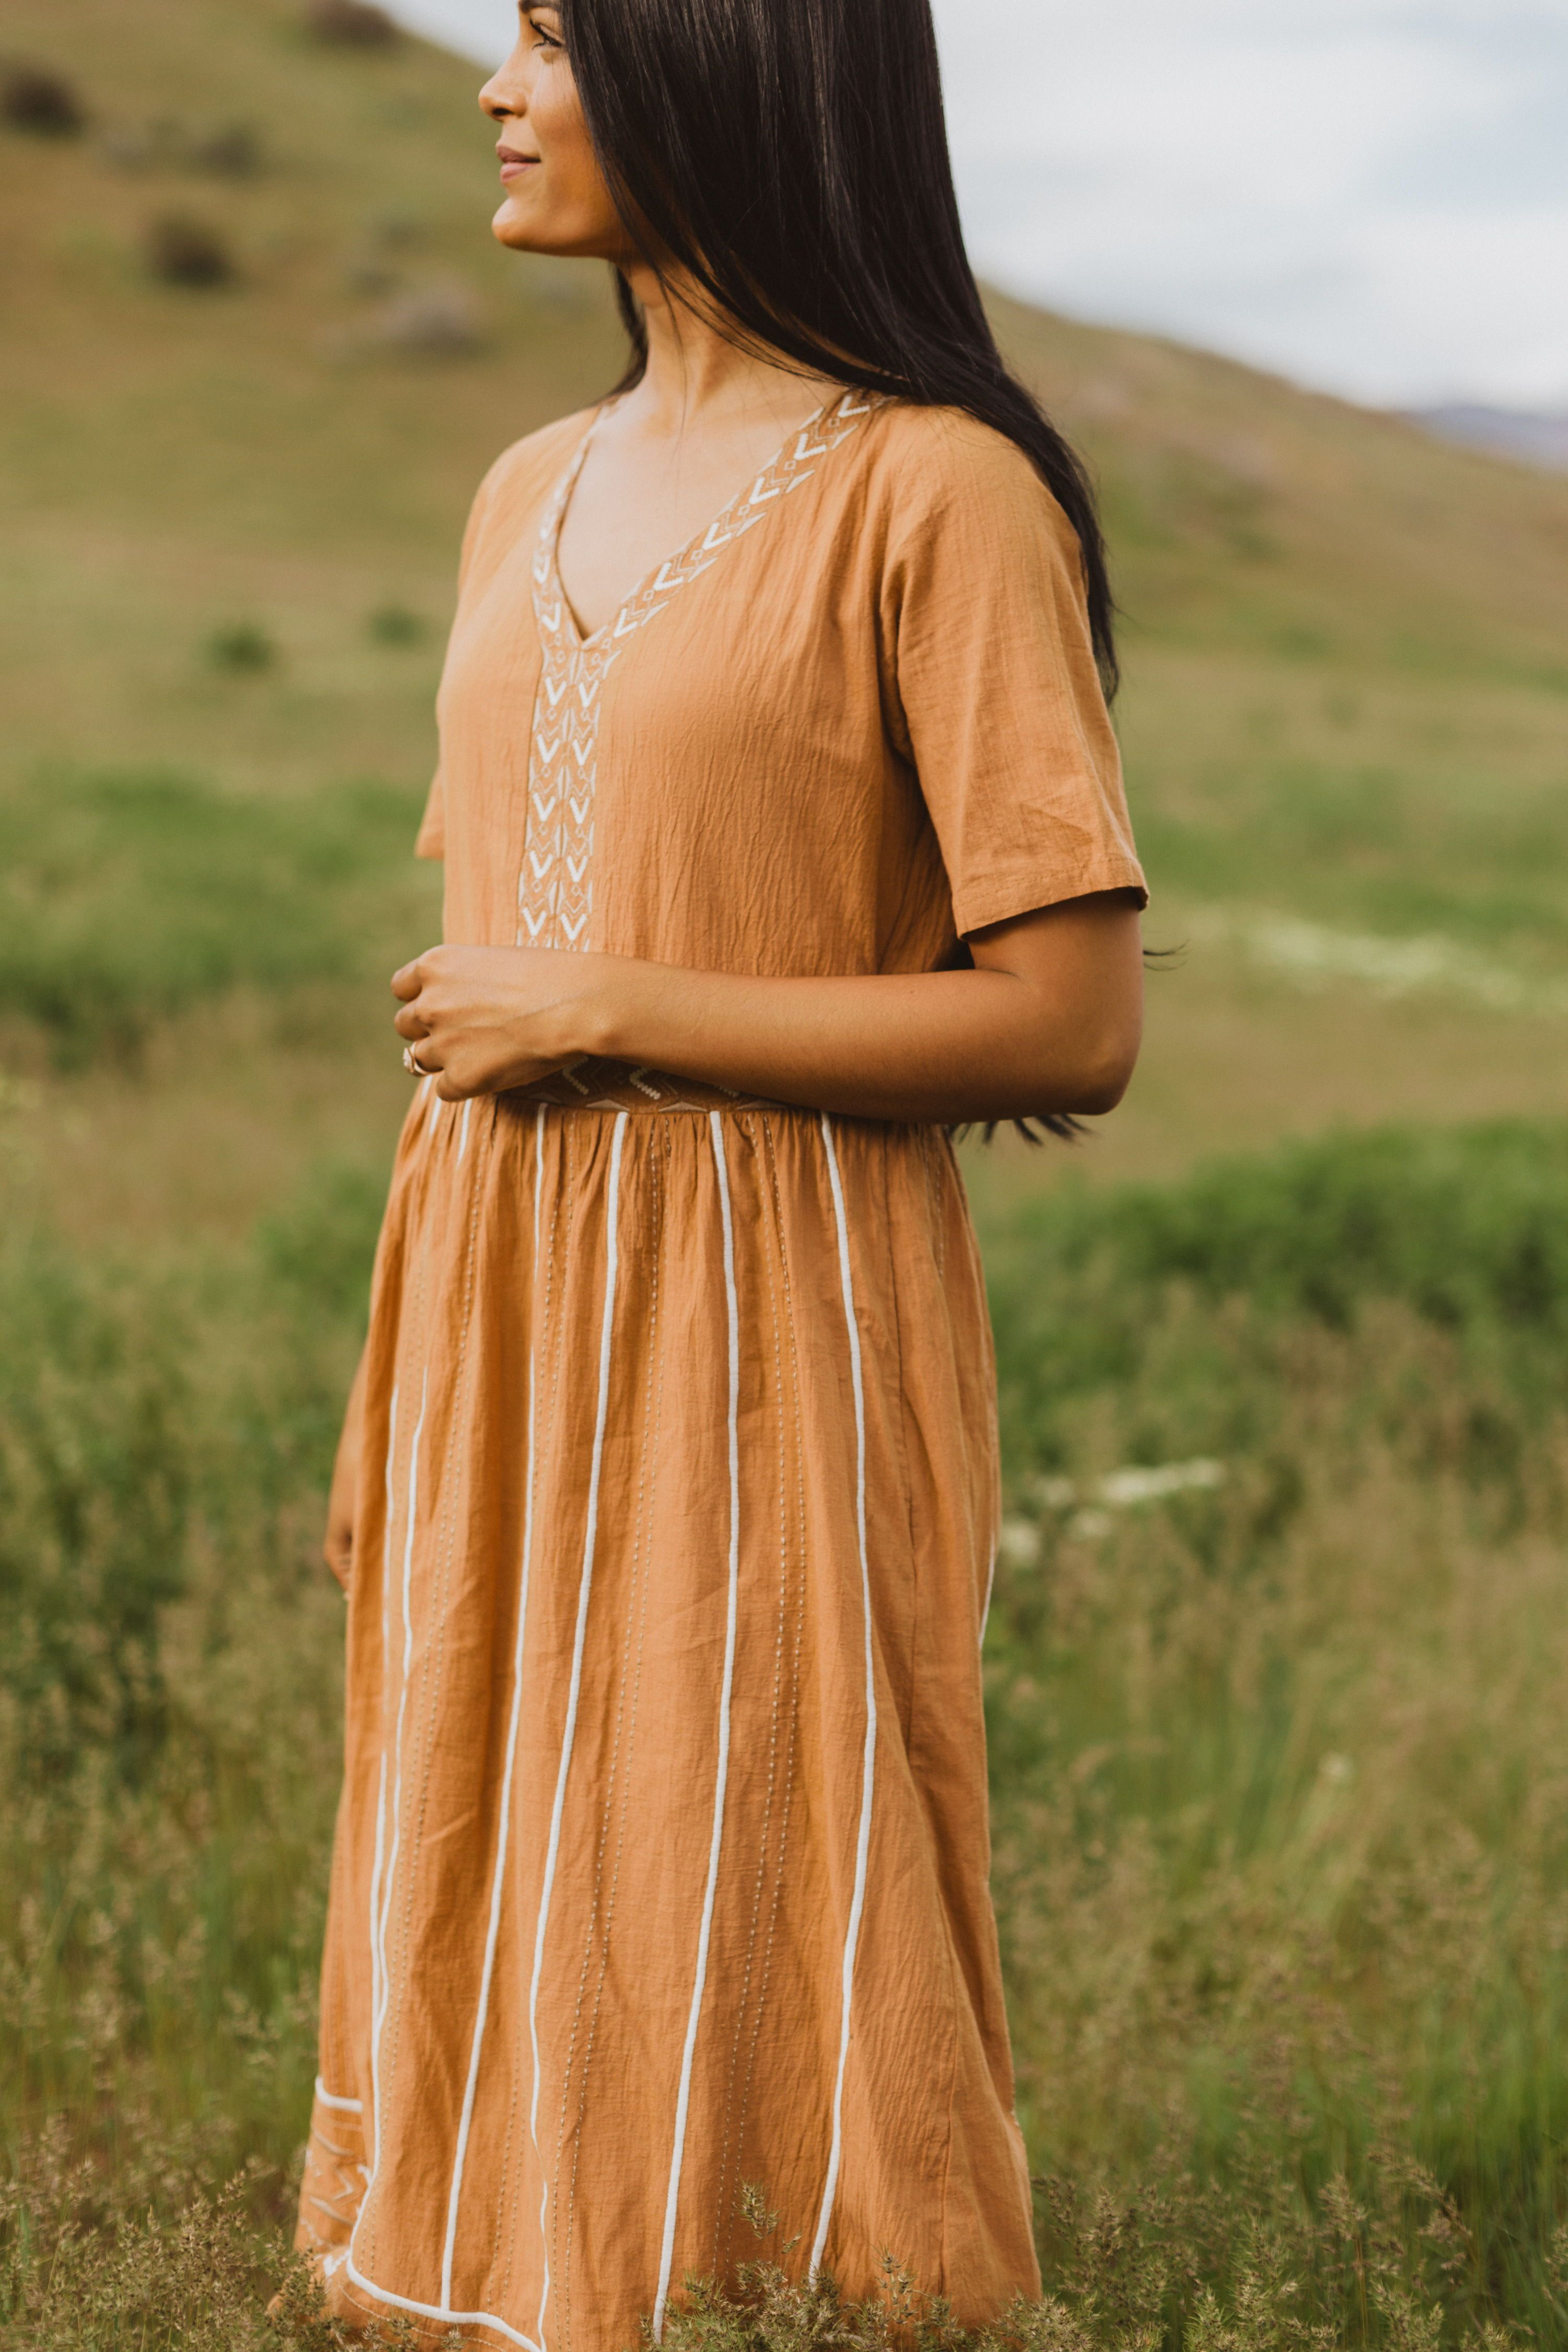 Earthy Bohemian And 100 Perfect The Fawn Patterned Midi Dress Is An Amazing Neutral Color With A Gauze Cotton Type Feel It Has Sub Vestidos Legais Vestidos [ 4500 x 3000 Pixel ]